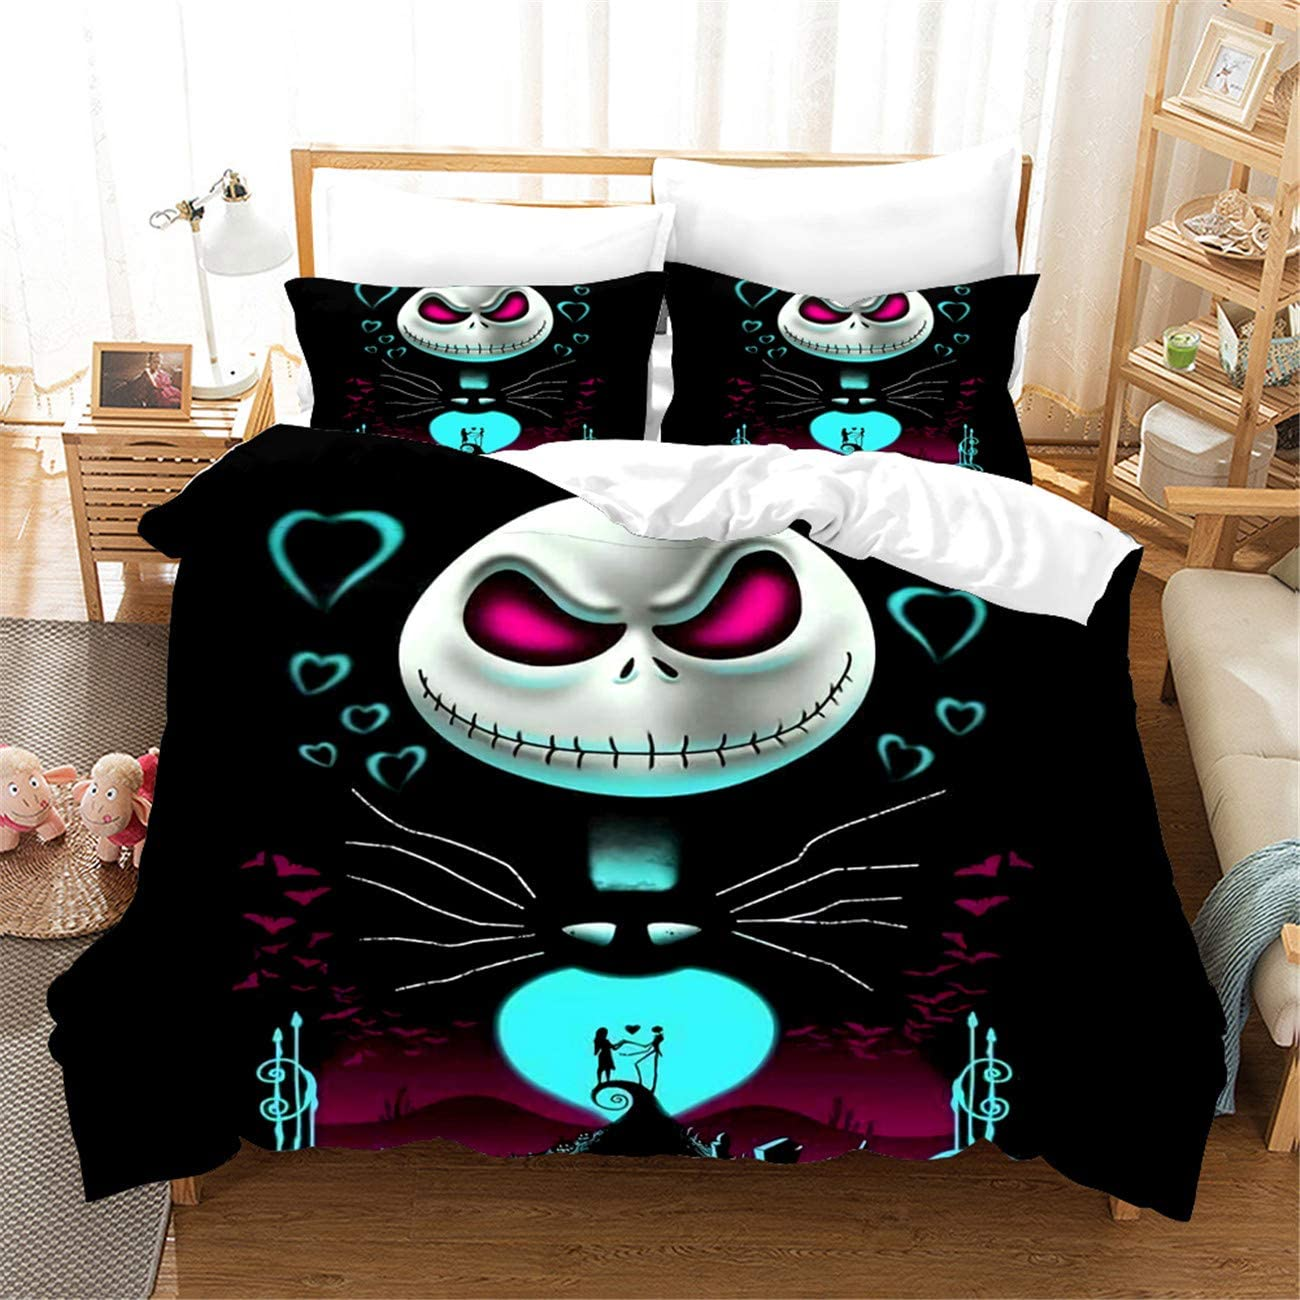 HMT NF Nightmare Before Christmas Bedding Cover Piec Set Duvet We OFFer at cheap prices Challenge the lowest price of Japan 3